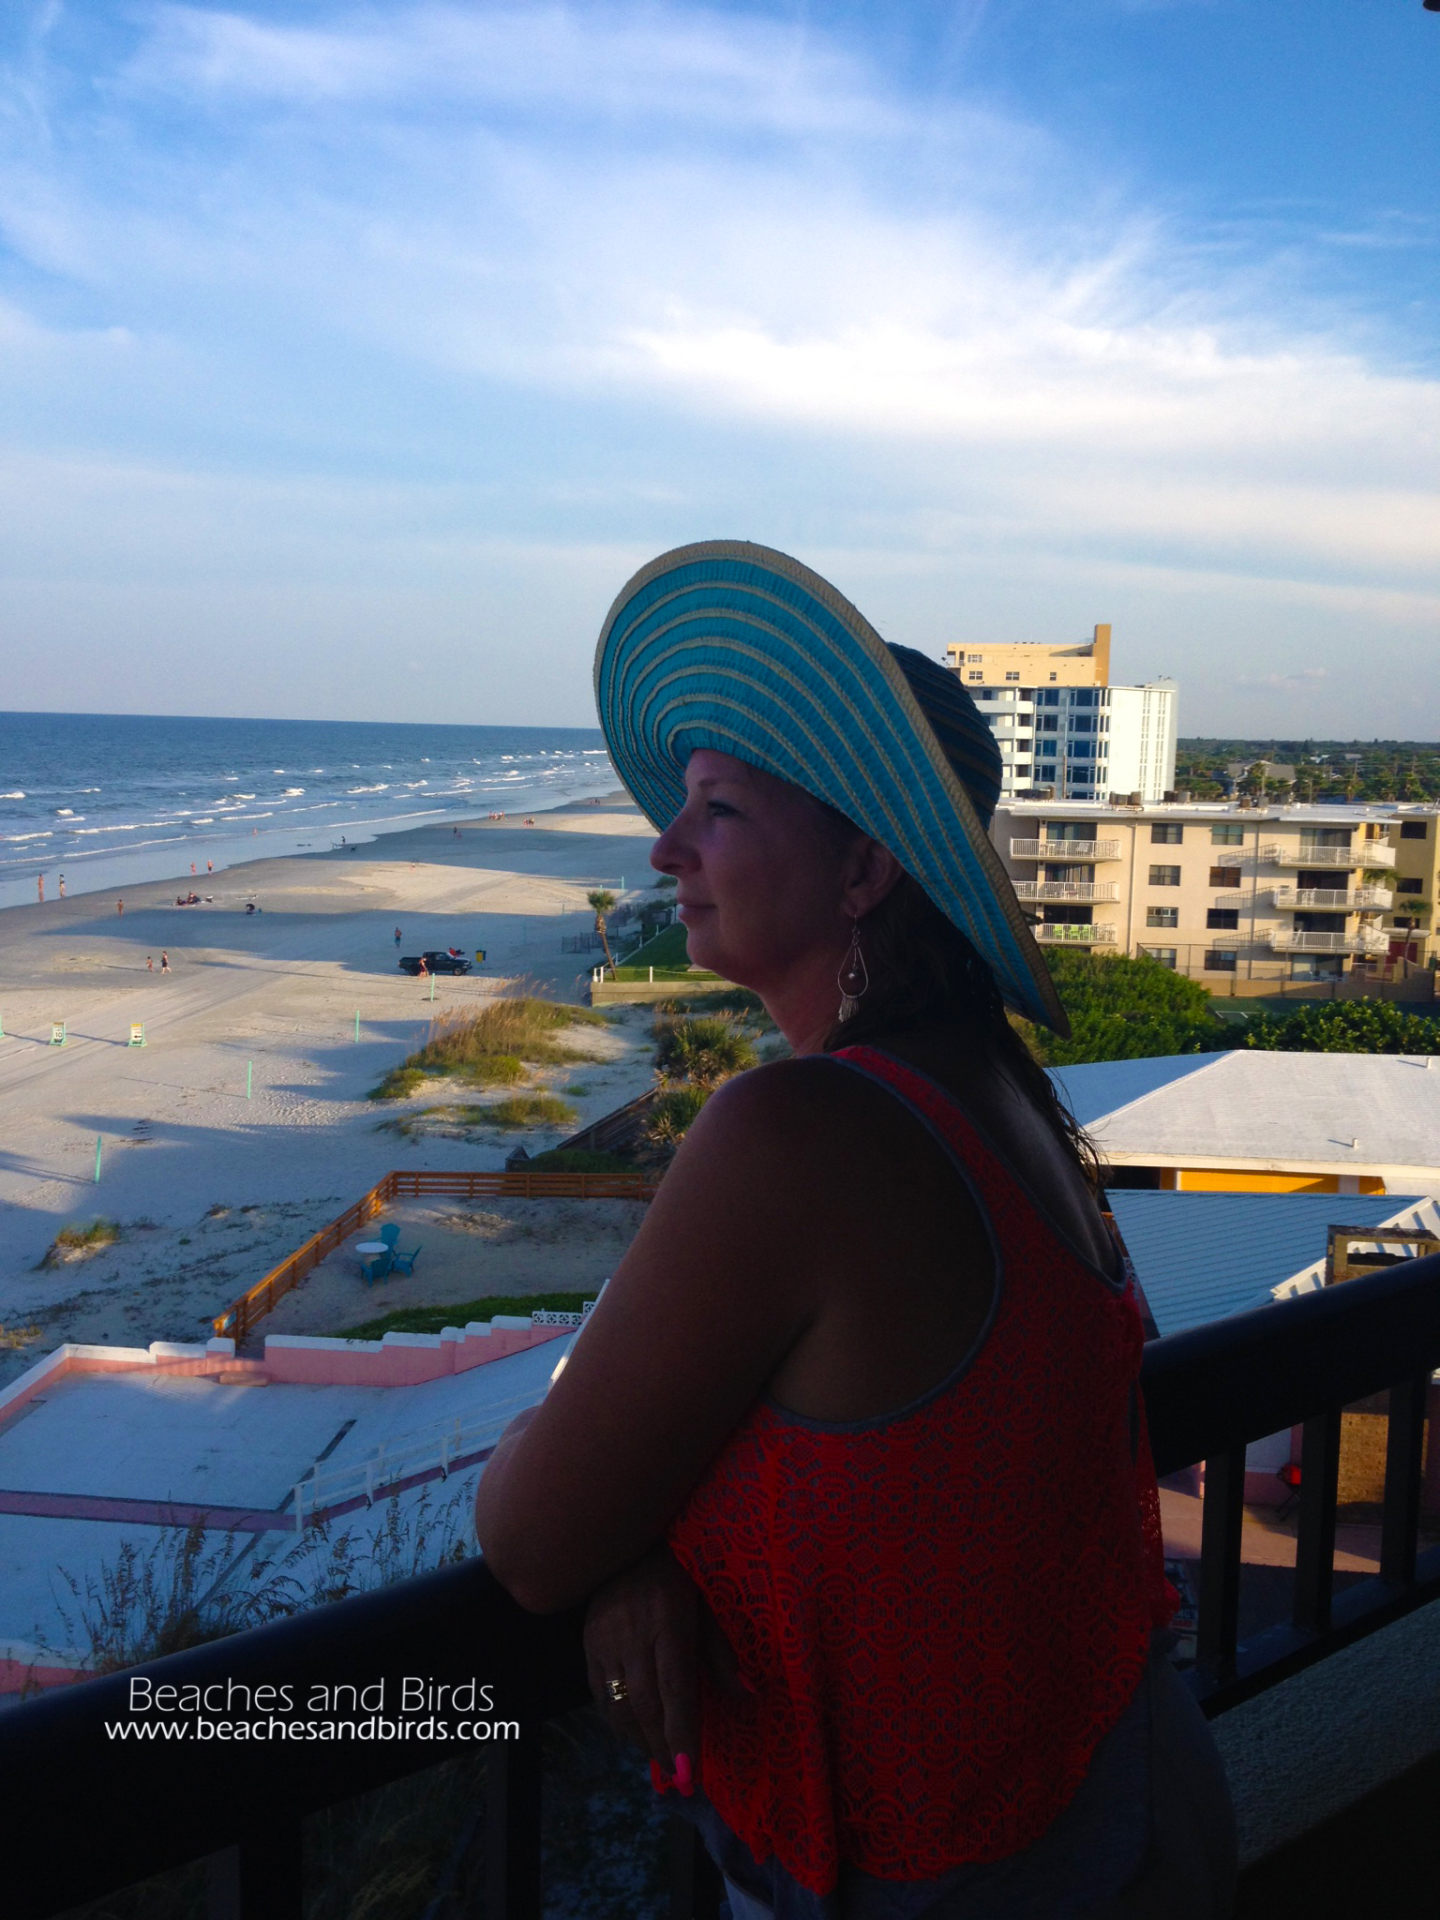 Best Western has Best View of New Smyrna Beach